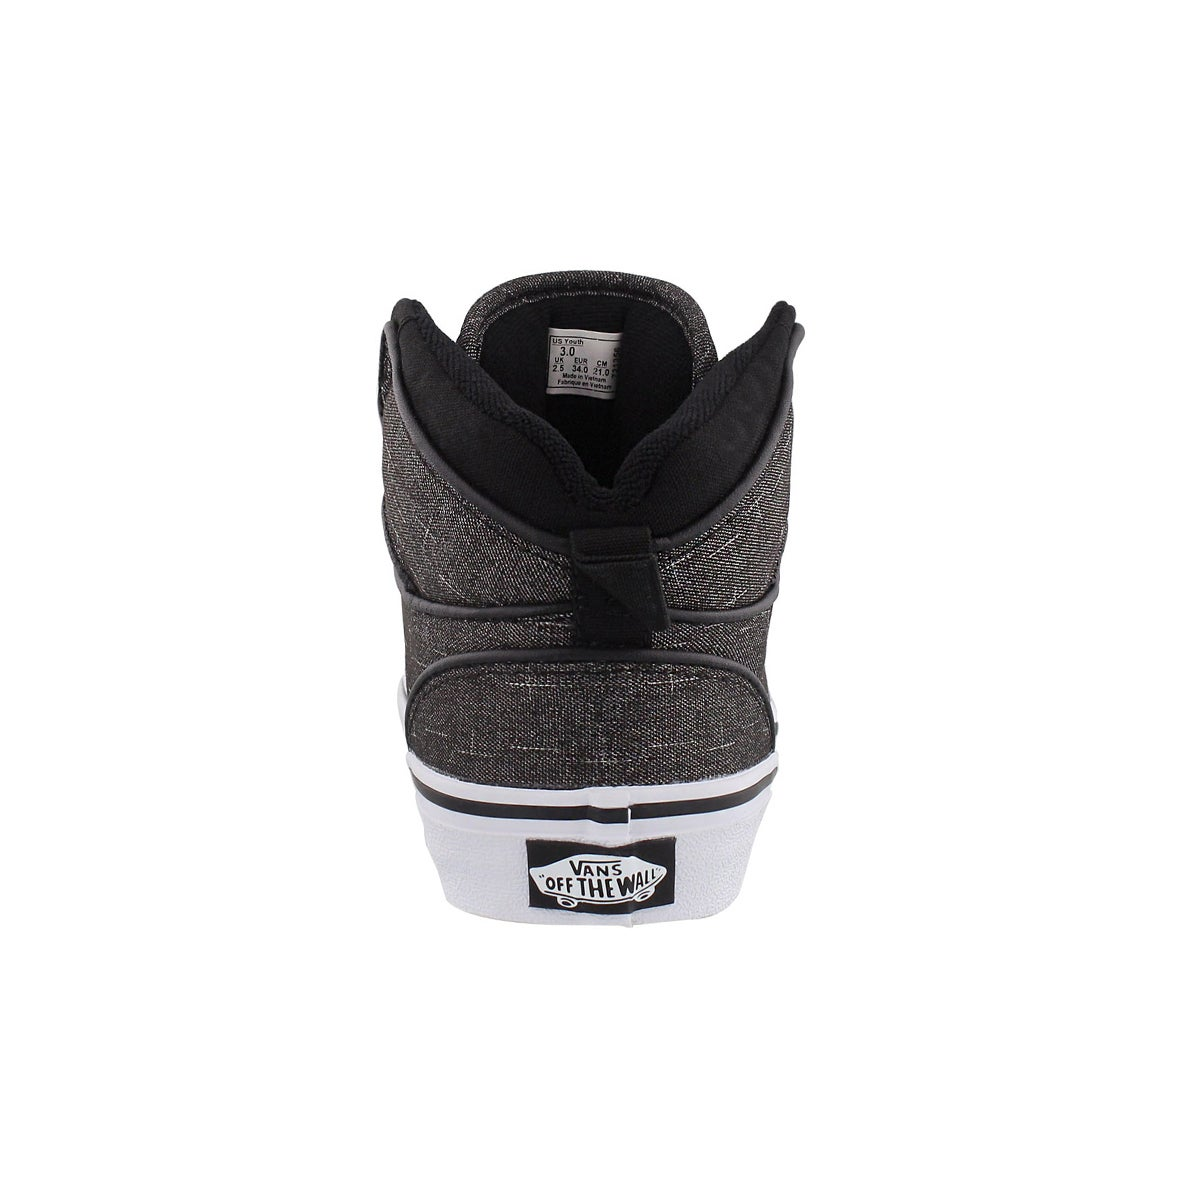 Bys Atwood Hi blk/wht lace up sneaker